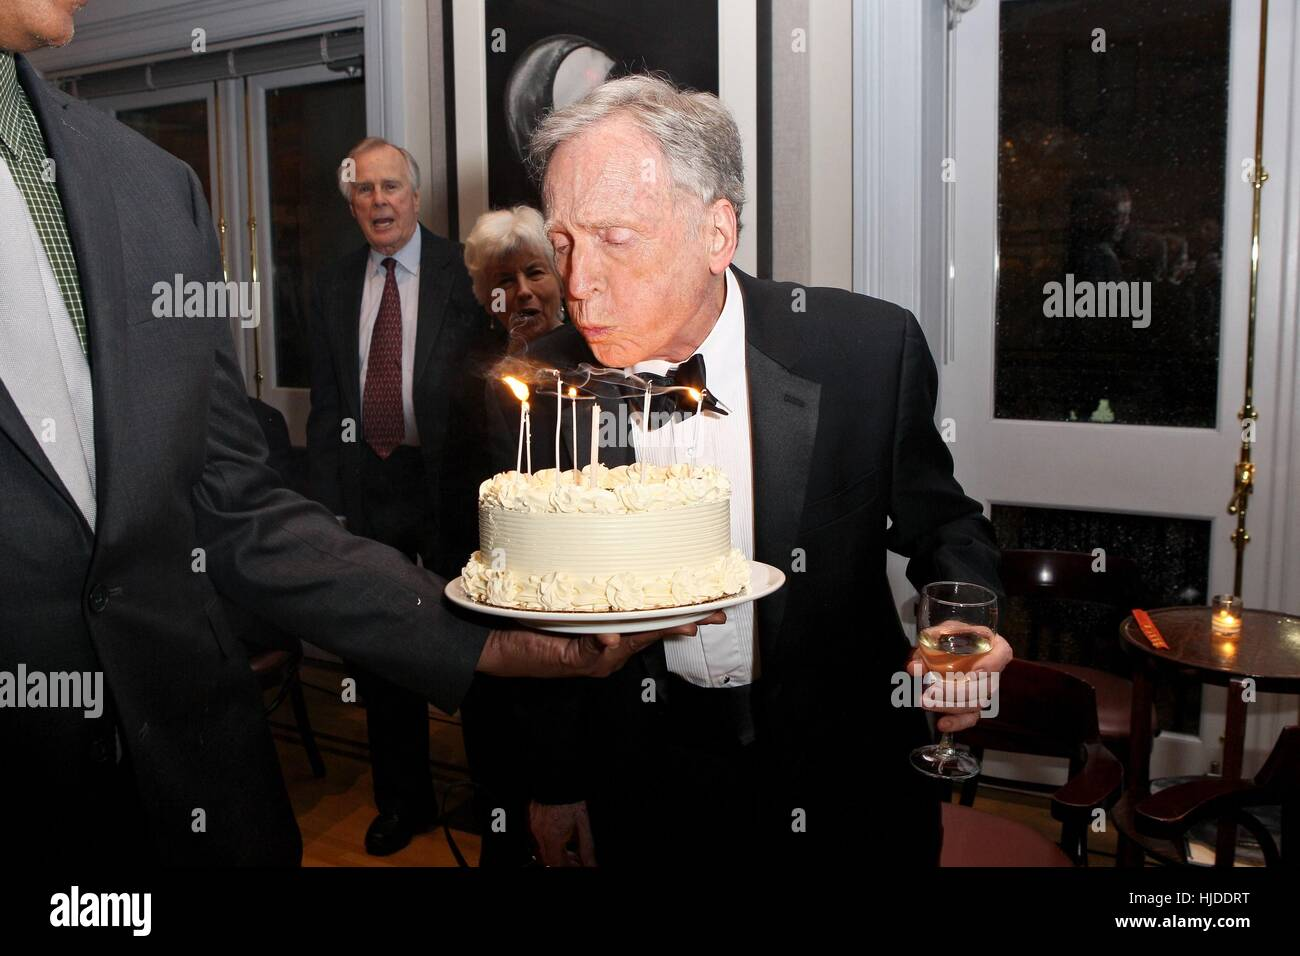 New York USA 23rd Jan 2017 Dick Cavett Blowing Out Candles On His Birthday Cake At Arrivals For Cavetts 80th Party Private Midtown Club